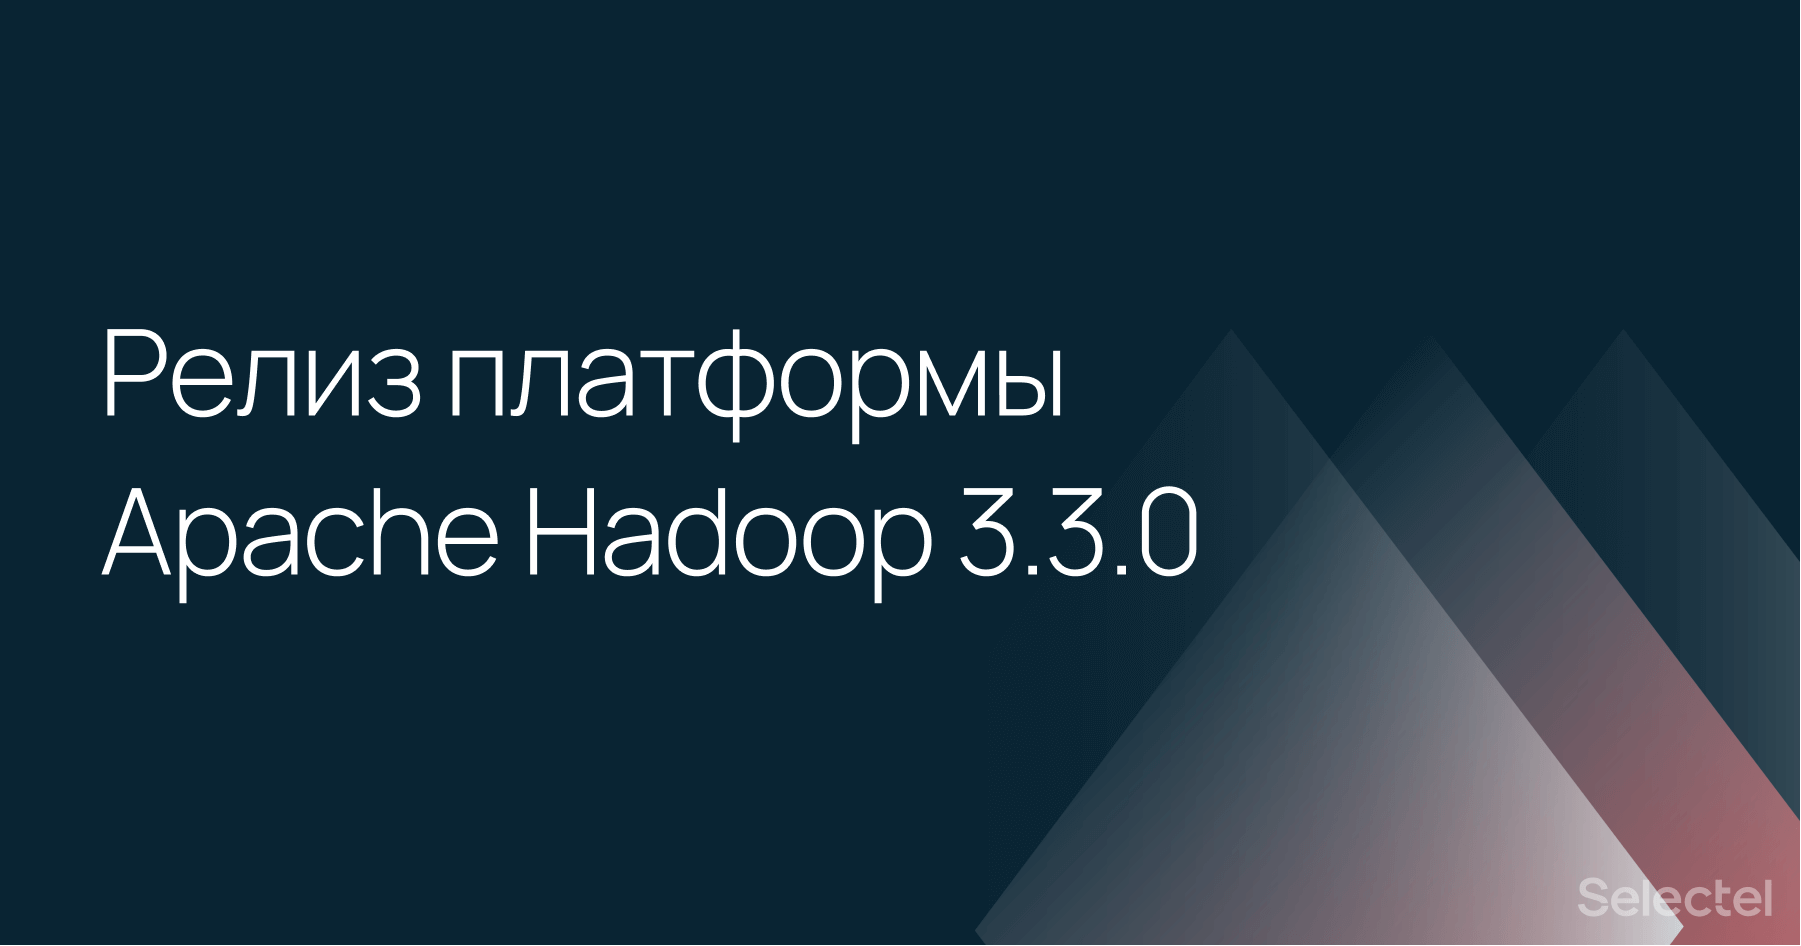 Apache Software Foundation опубликовала релиз платформы Apache Hadoop 3.3.0